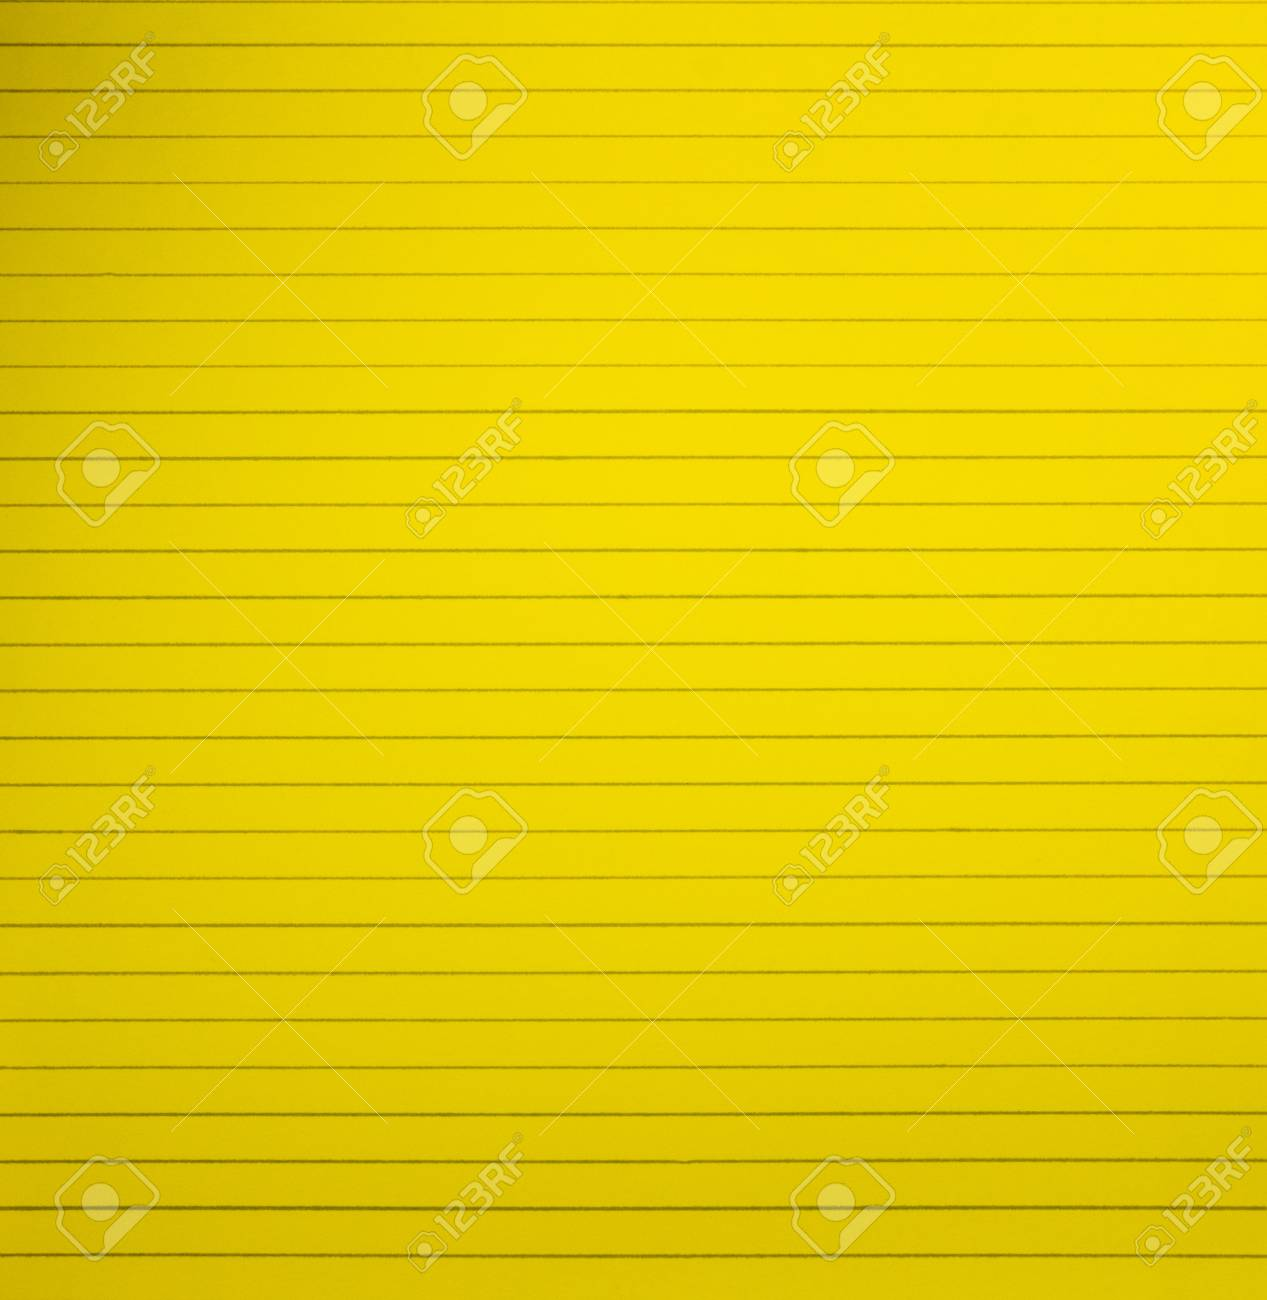 Yellow Blank Lined Notebook Paper Page Background Stock Photo ...